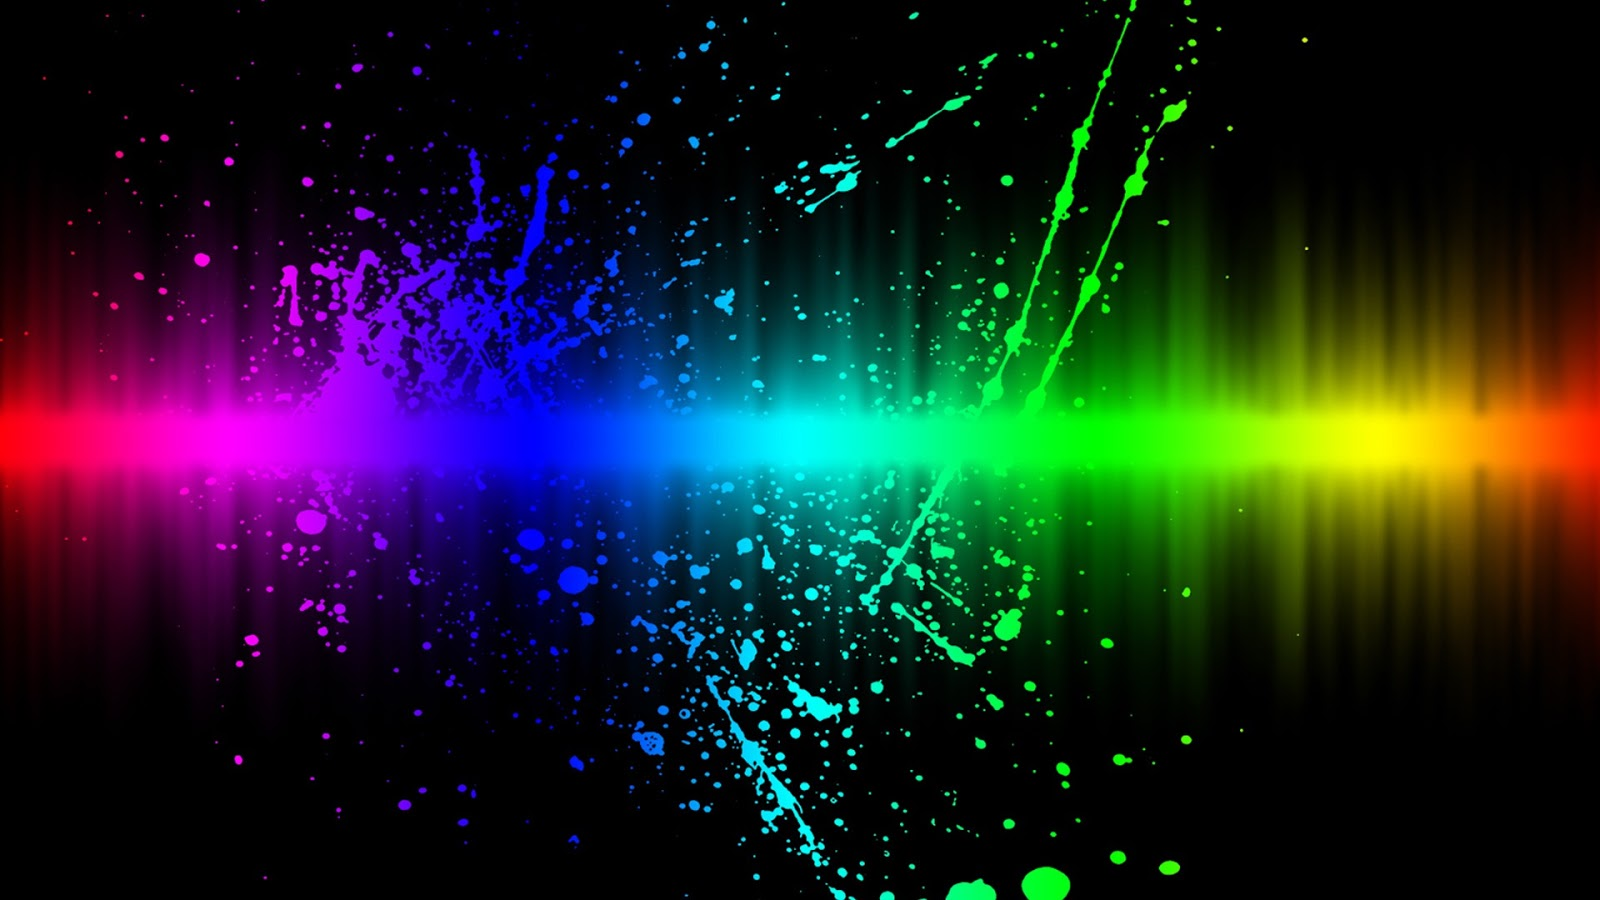 Wallpaper Cool Wallpapers Rainbow Degradation